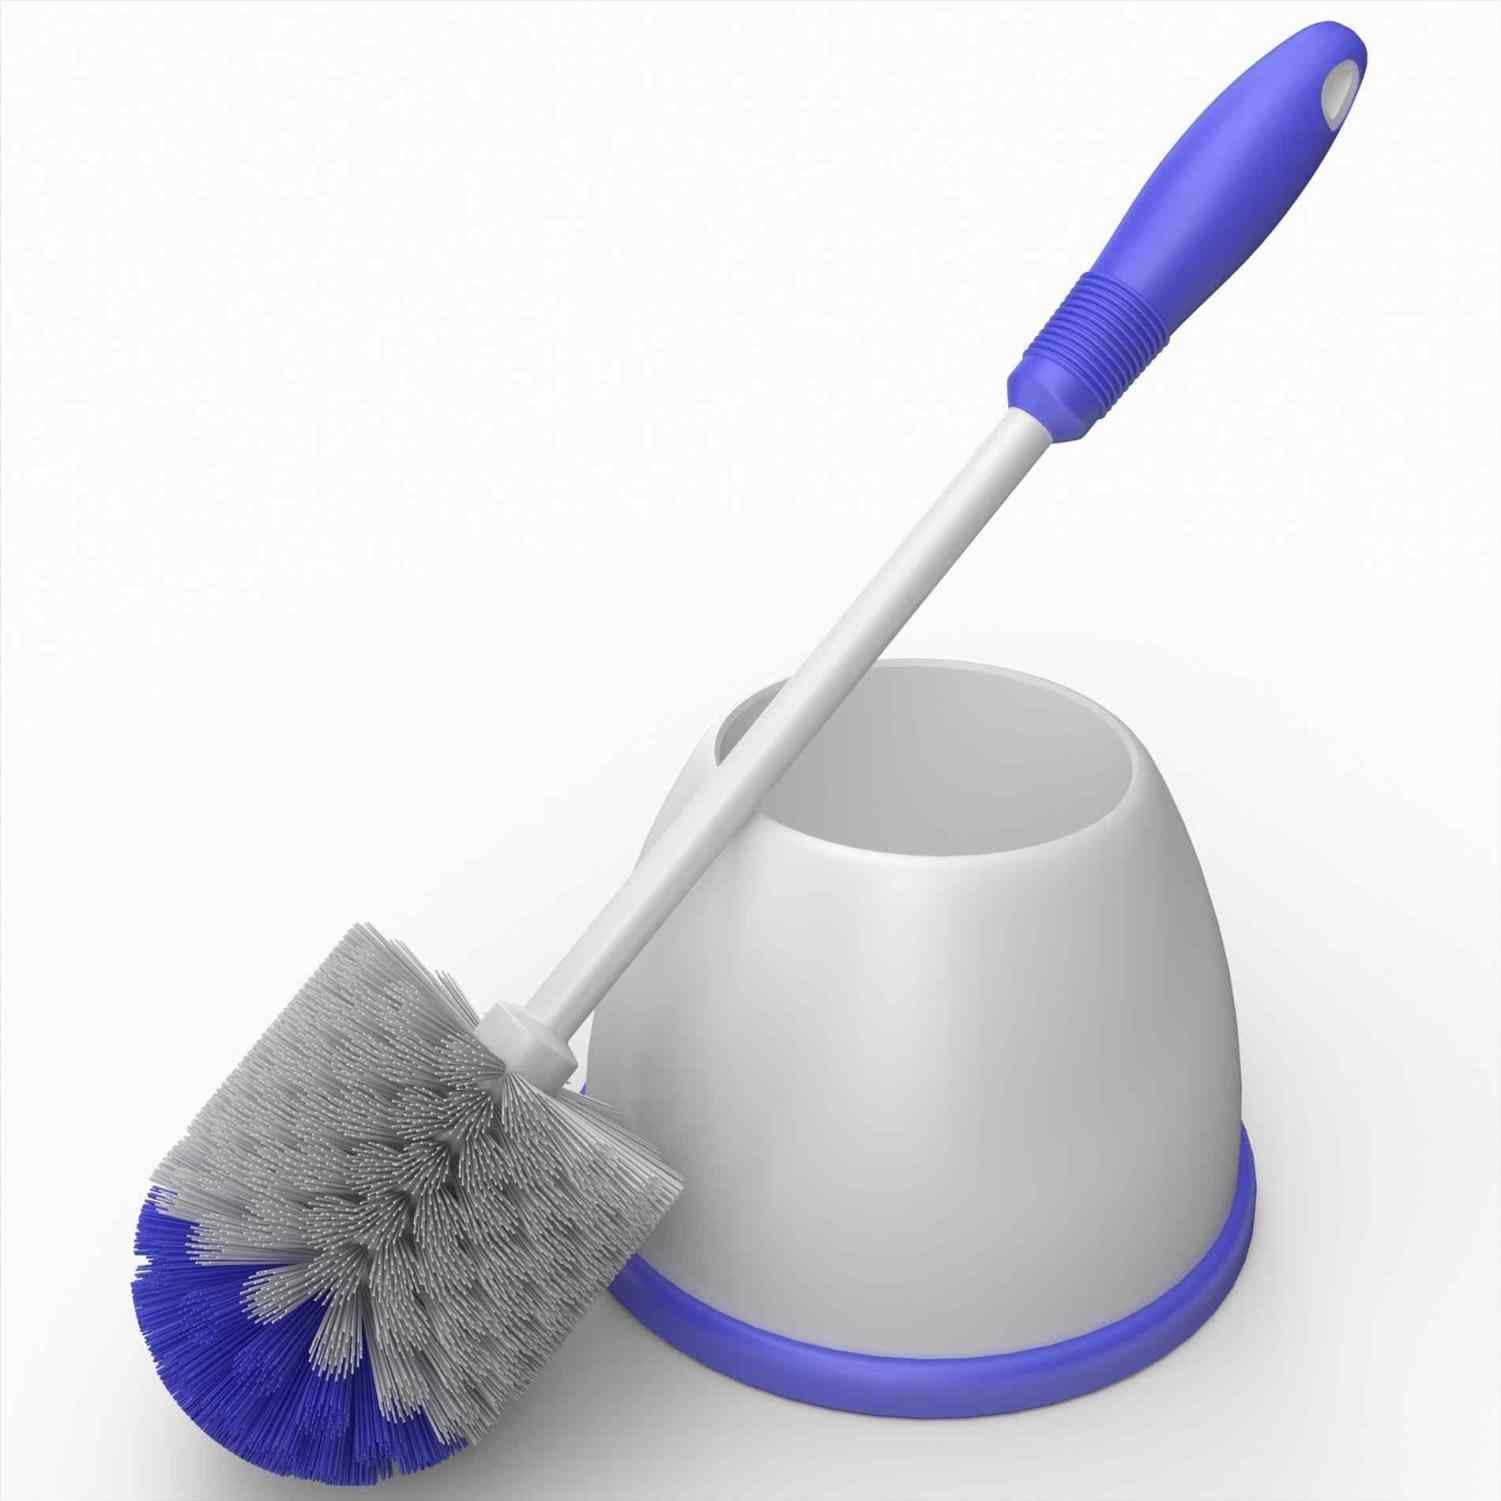 Brush clipart washing brush. The images collection of